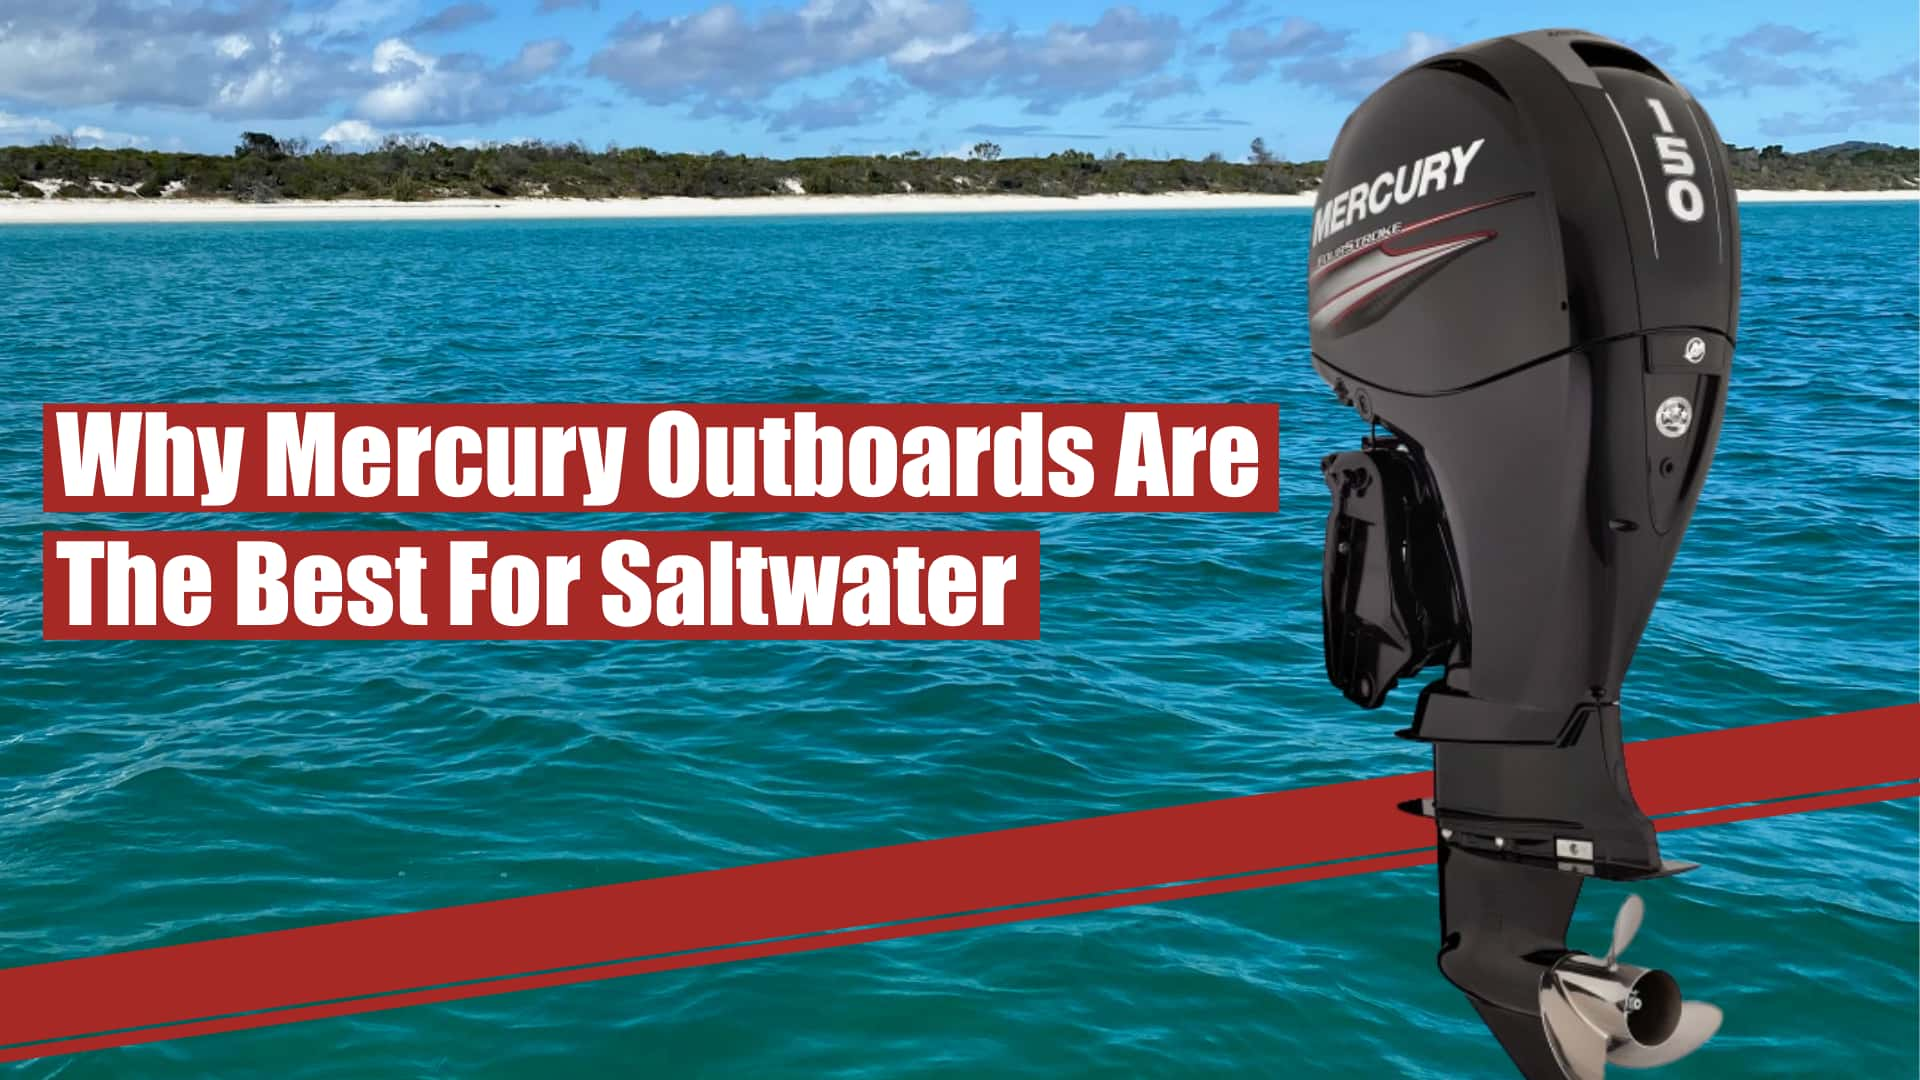 Mercury Outboards: The Best Outboard Motor For Saltwater